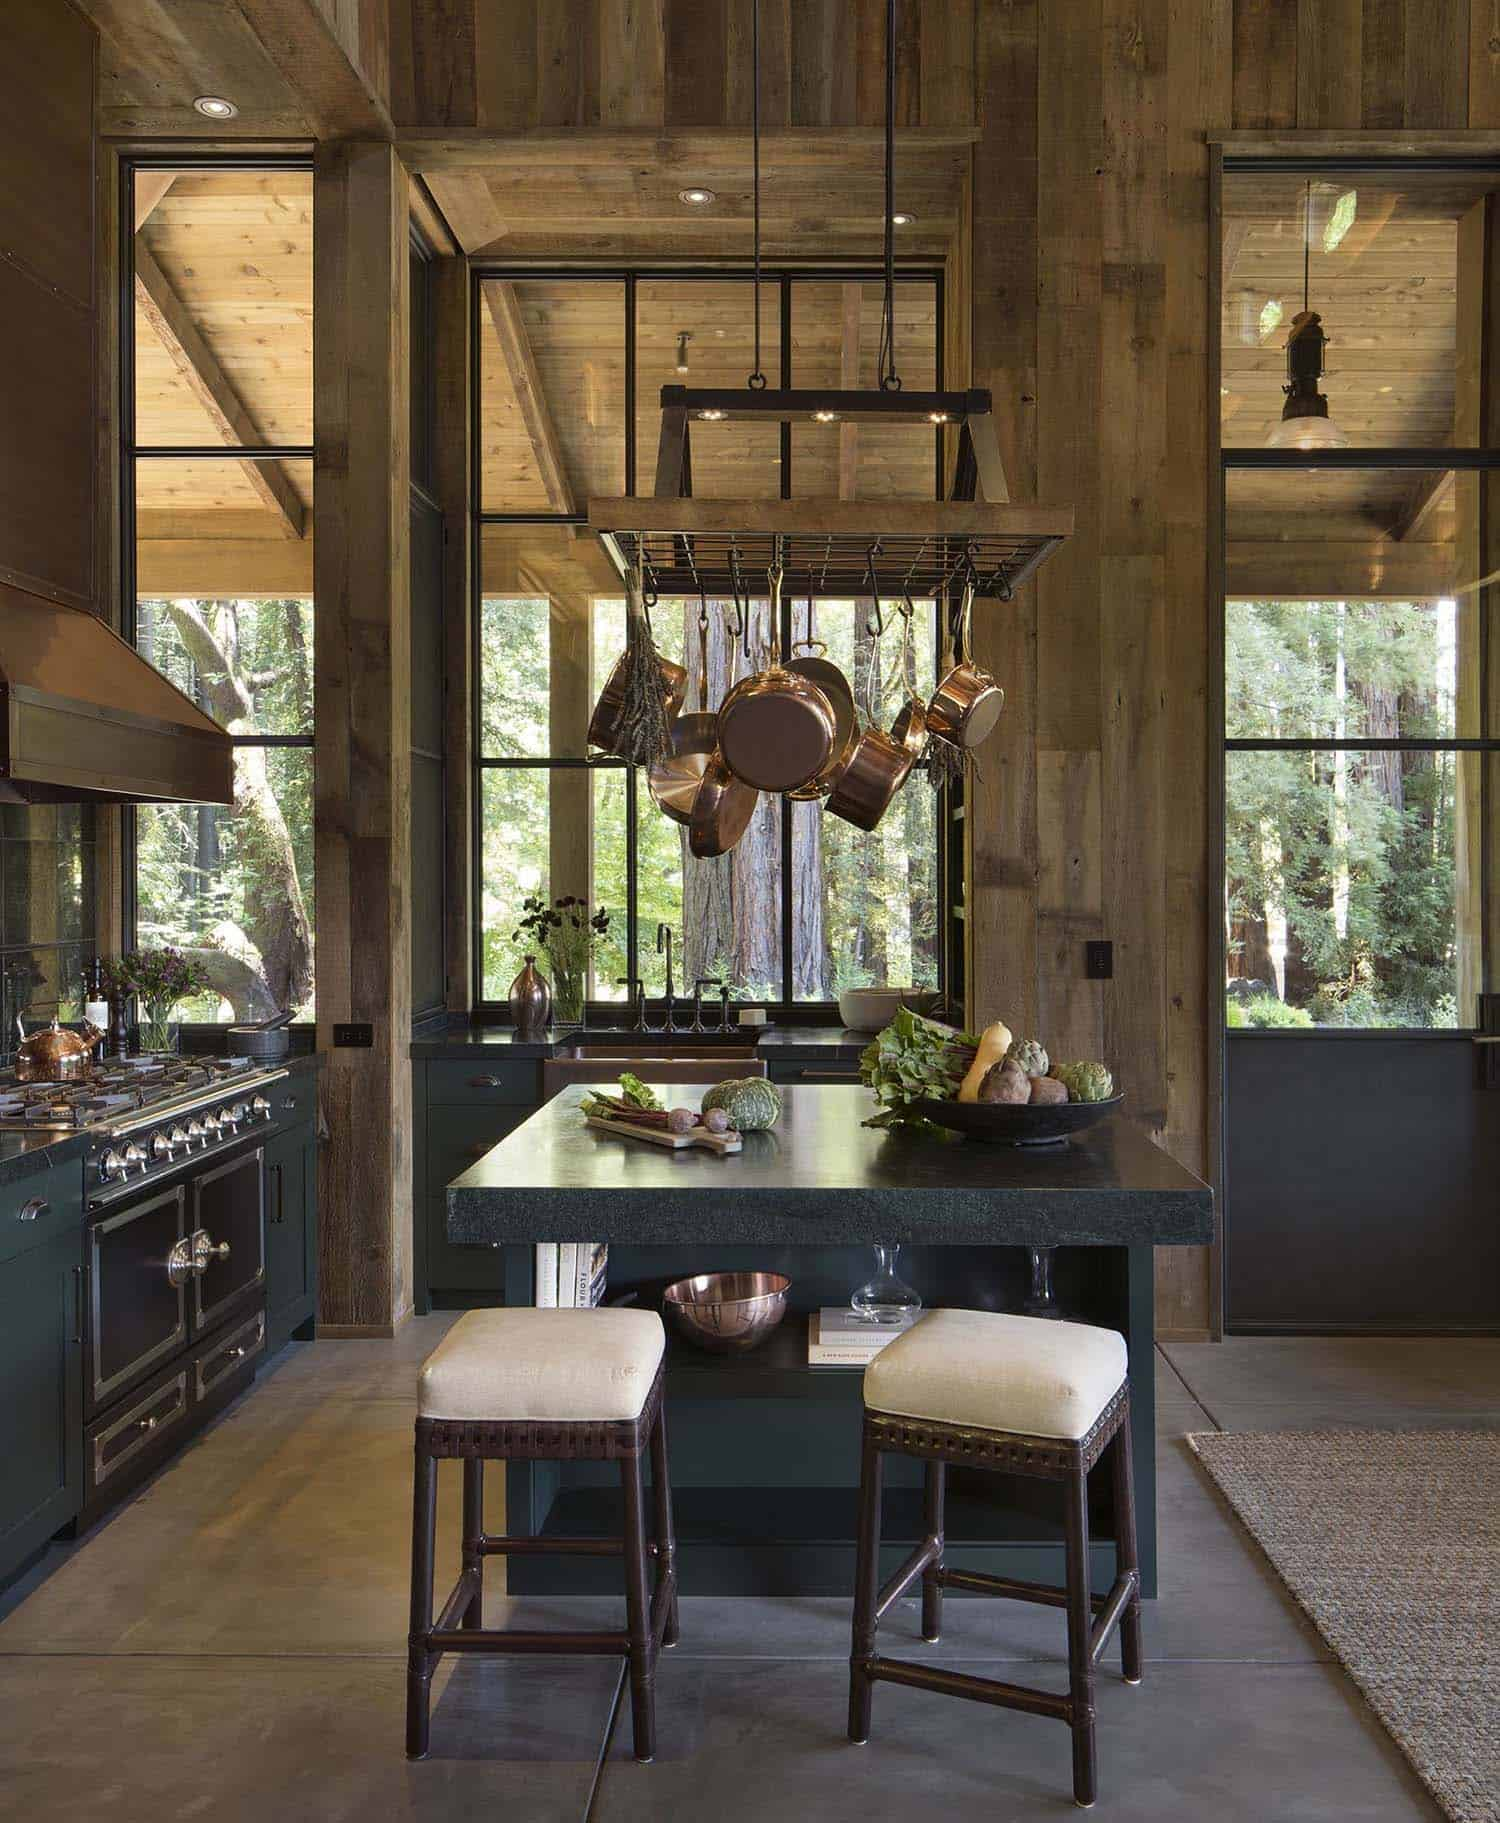 Like the living room, the rustic kitchen has soaring ceilings. The extensive woodwork extends into the kitchen space that includes dark green cabinetry, a pot rack suspended above the island.